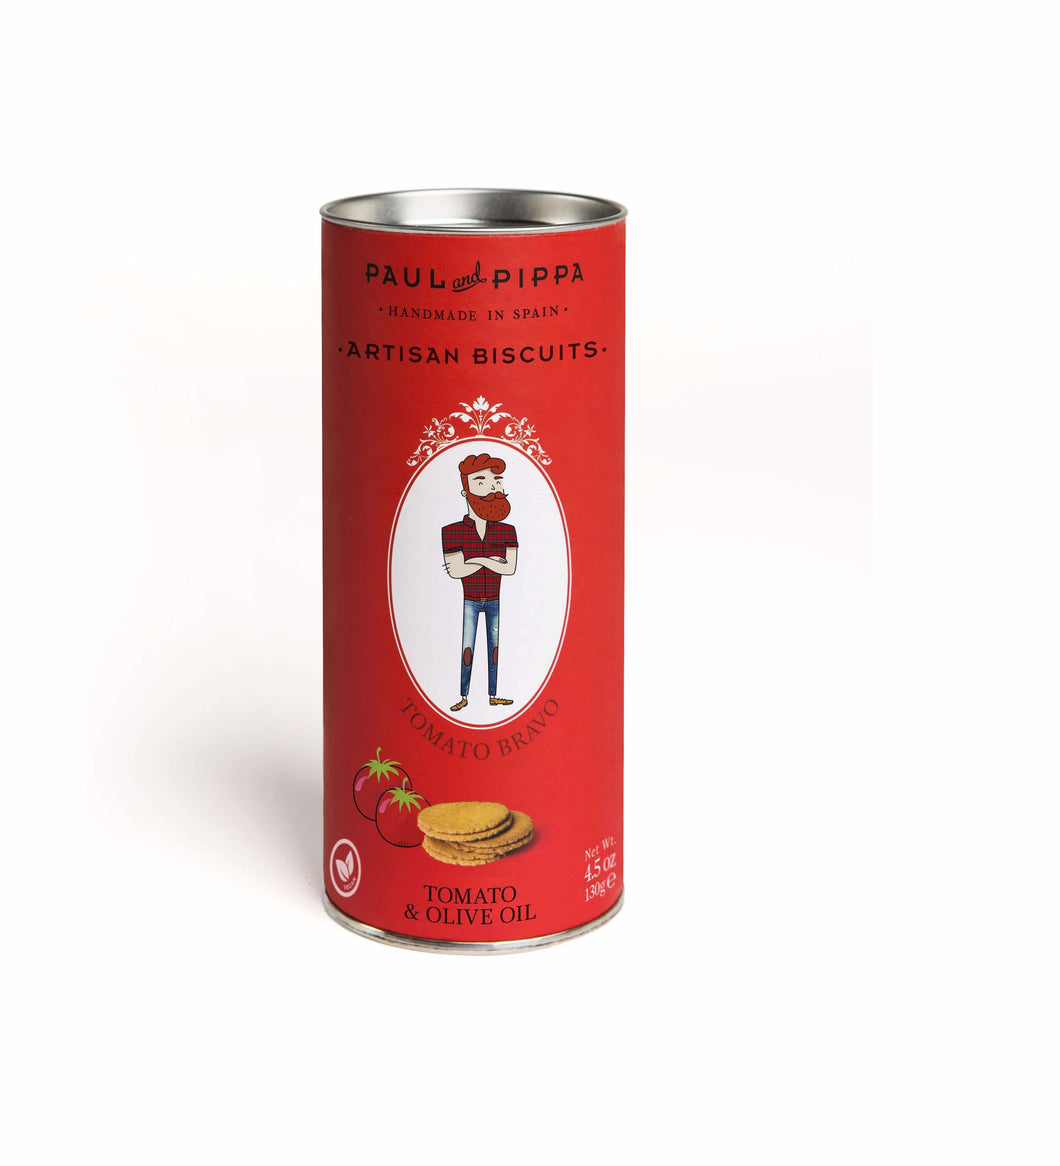 Paul and Pippa Tomato Bravo Artisan Biscuits - GINSATIONS